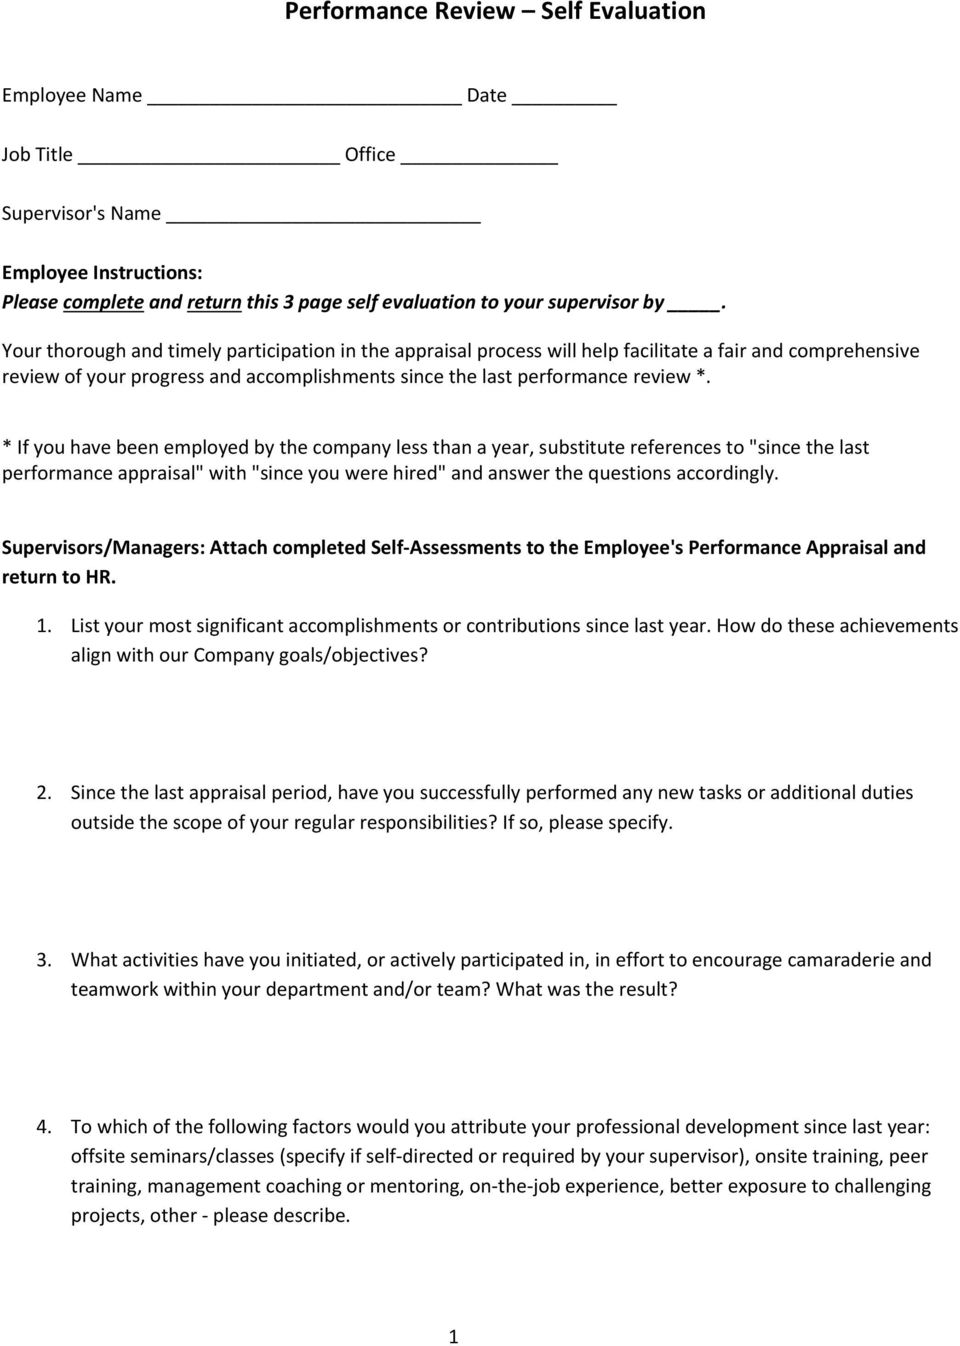 performance appraisal template samples pdf if you have been employed by the company less than a year substitute references